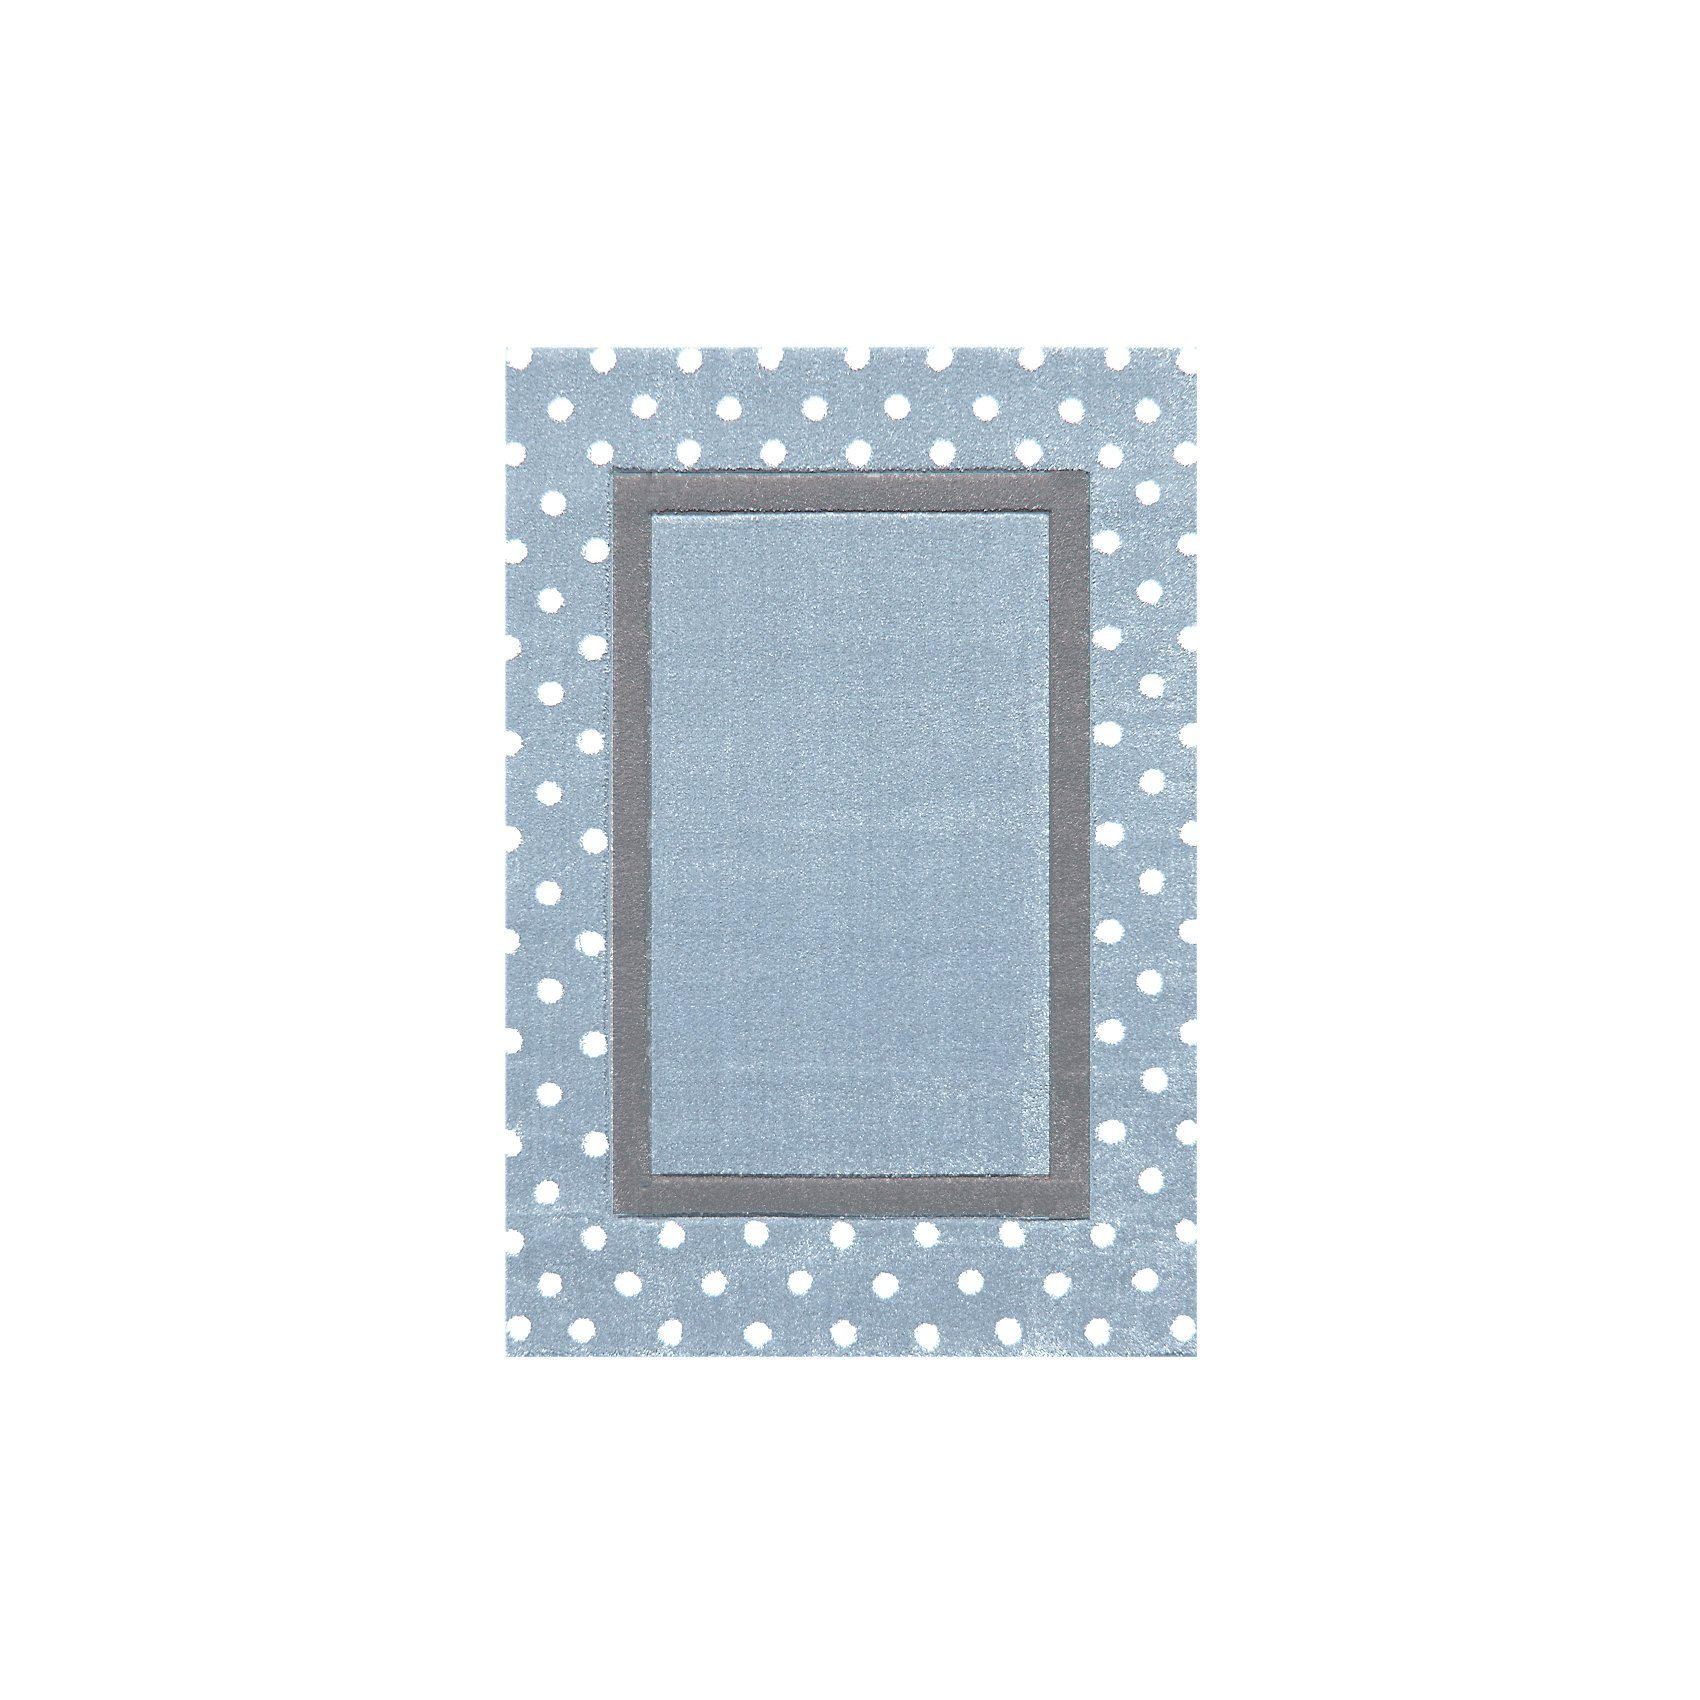 Happy Rugs Teppiche Happy Rugs Kinderteppich Point Blau Silbergrau Blau 160 X